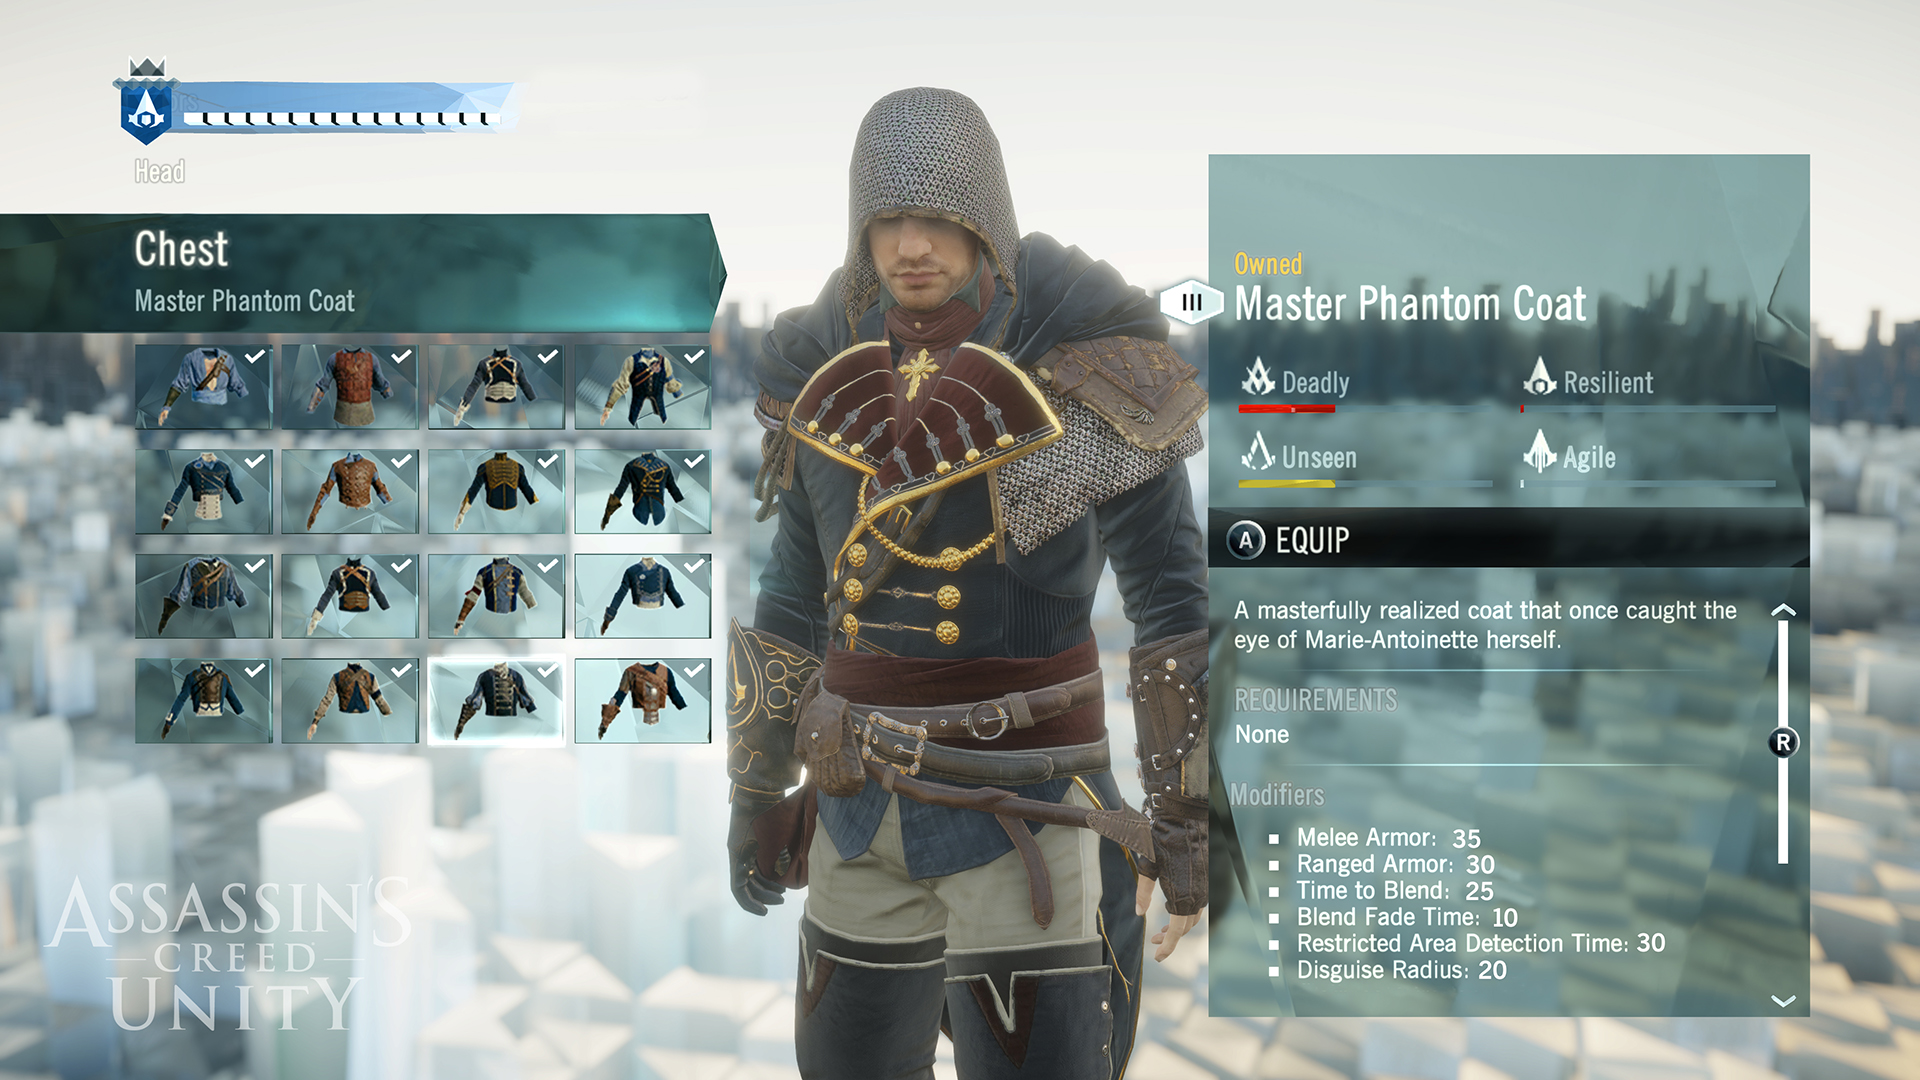 Assassin's Creed Unity VGP Review (40)